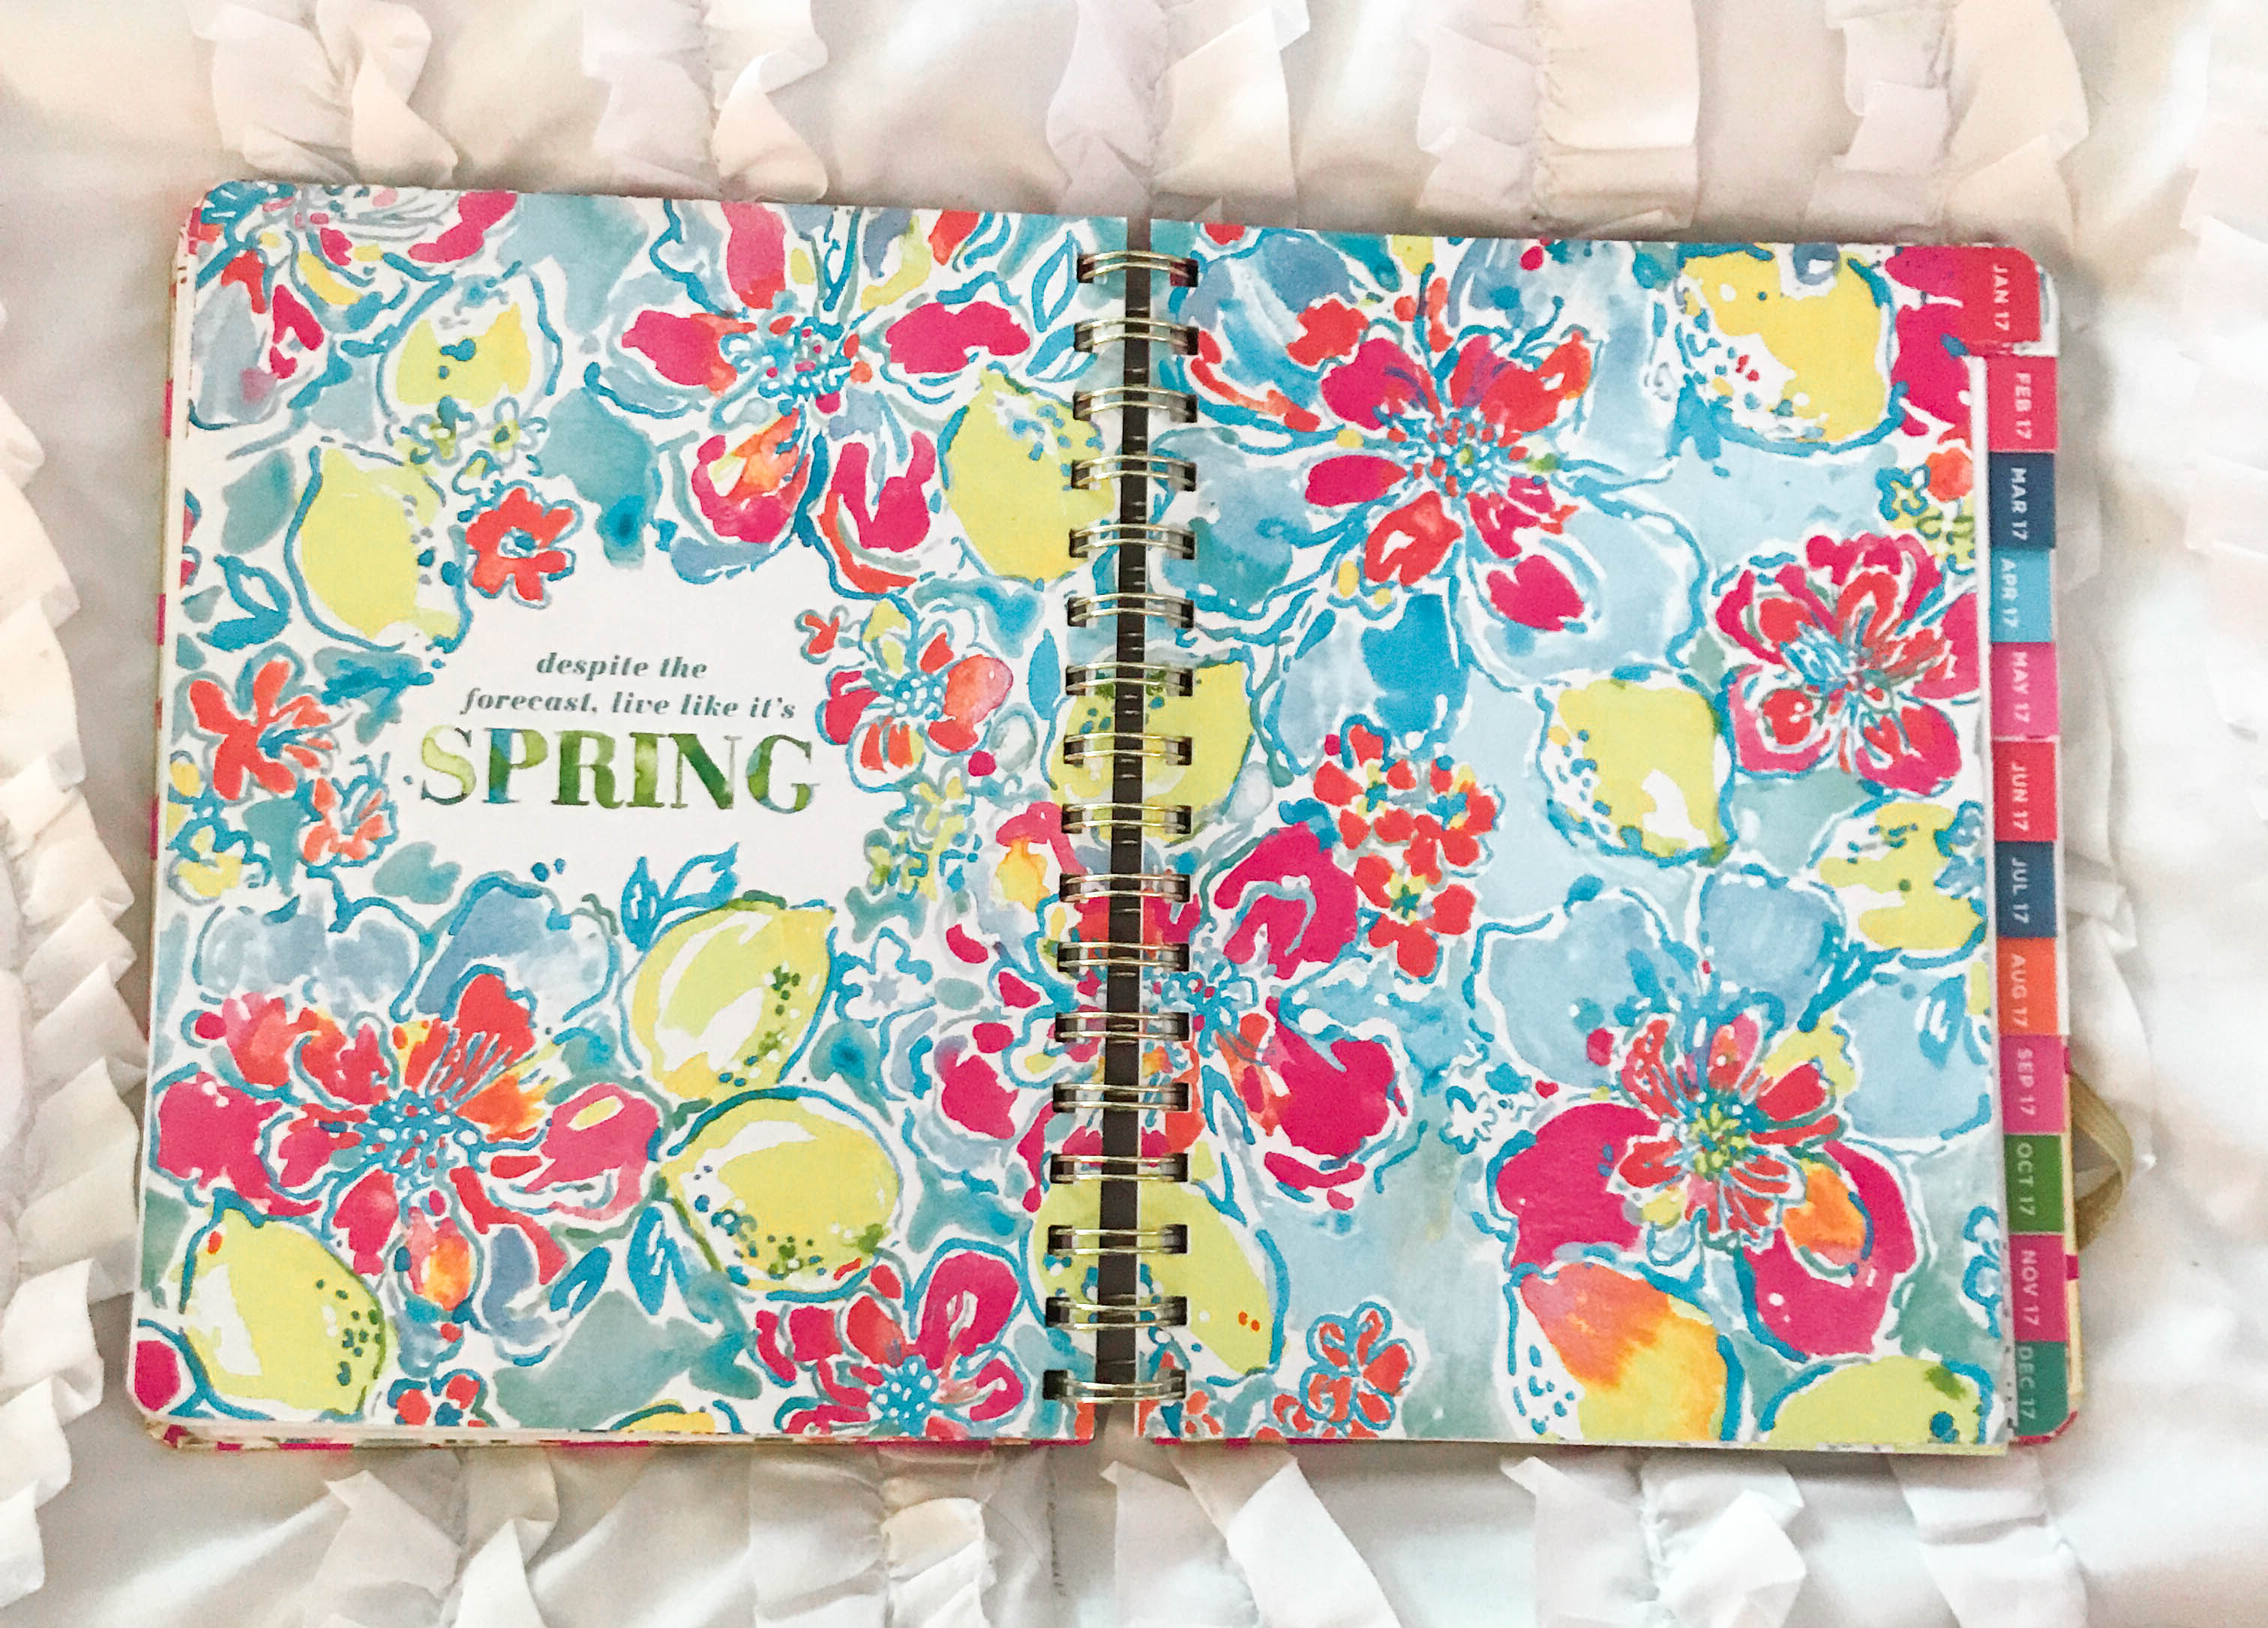 lilly pulitzer tusk in sun agenda planner organization stationary compared to shop ban.do kate spade vacation planning getaway guide floral tropical watercolor monthly month title page spread tropical floral flowers bright colors pink blue yellow green